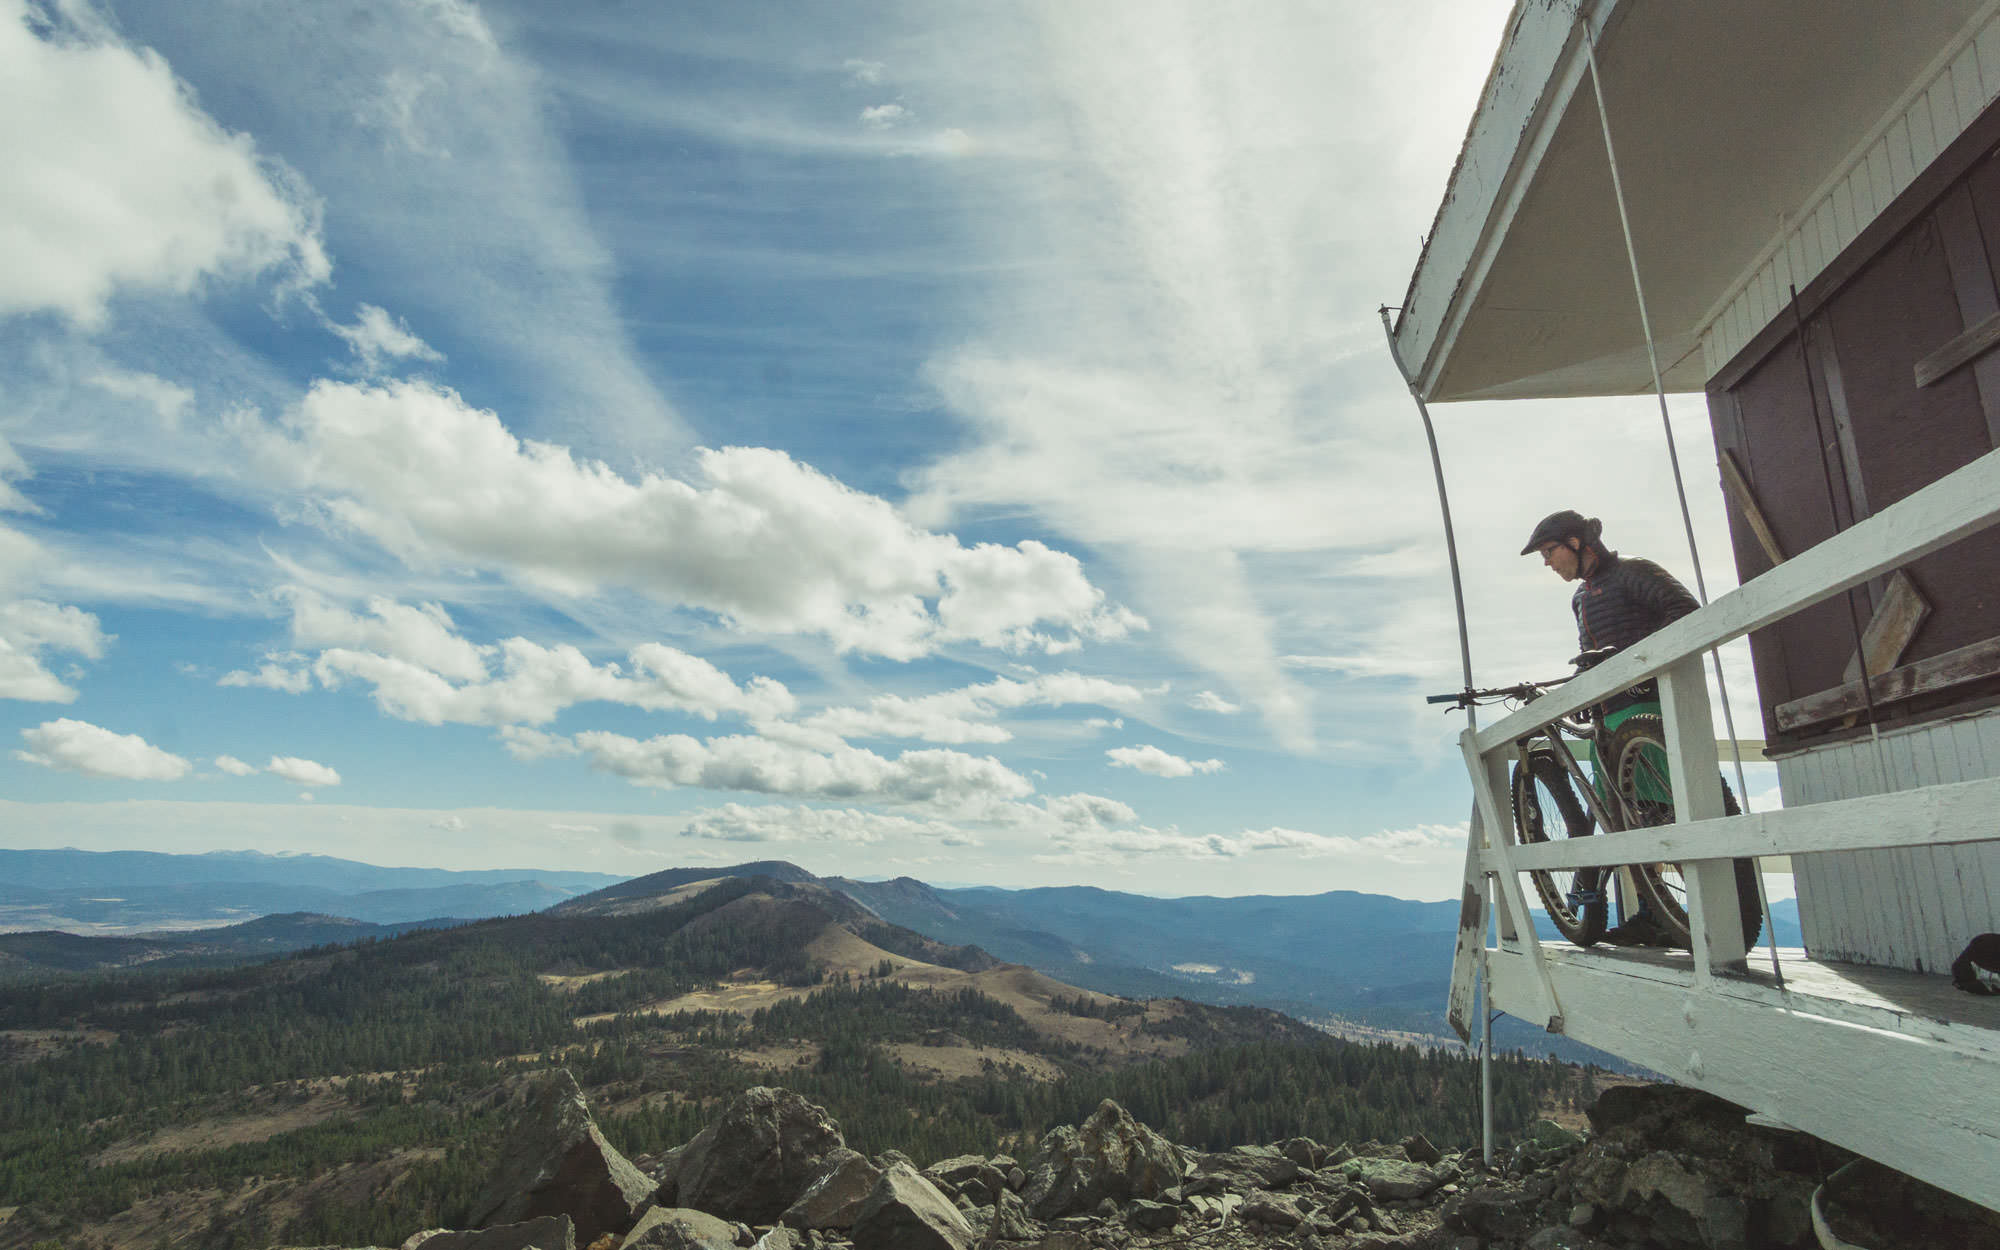 A mountain biker stands on the balcony of a fire lookout tower, looking over a vast landscape.